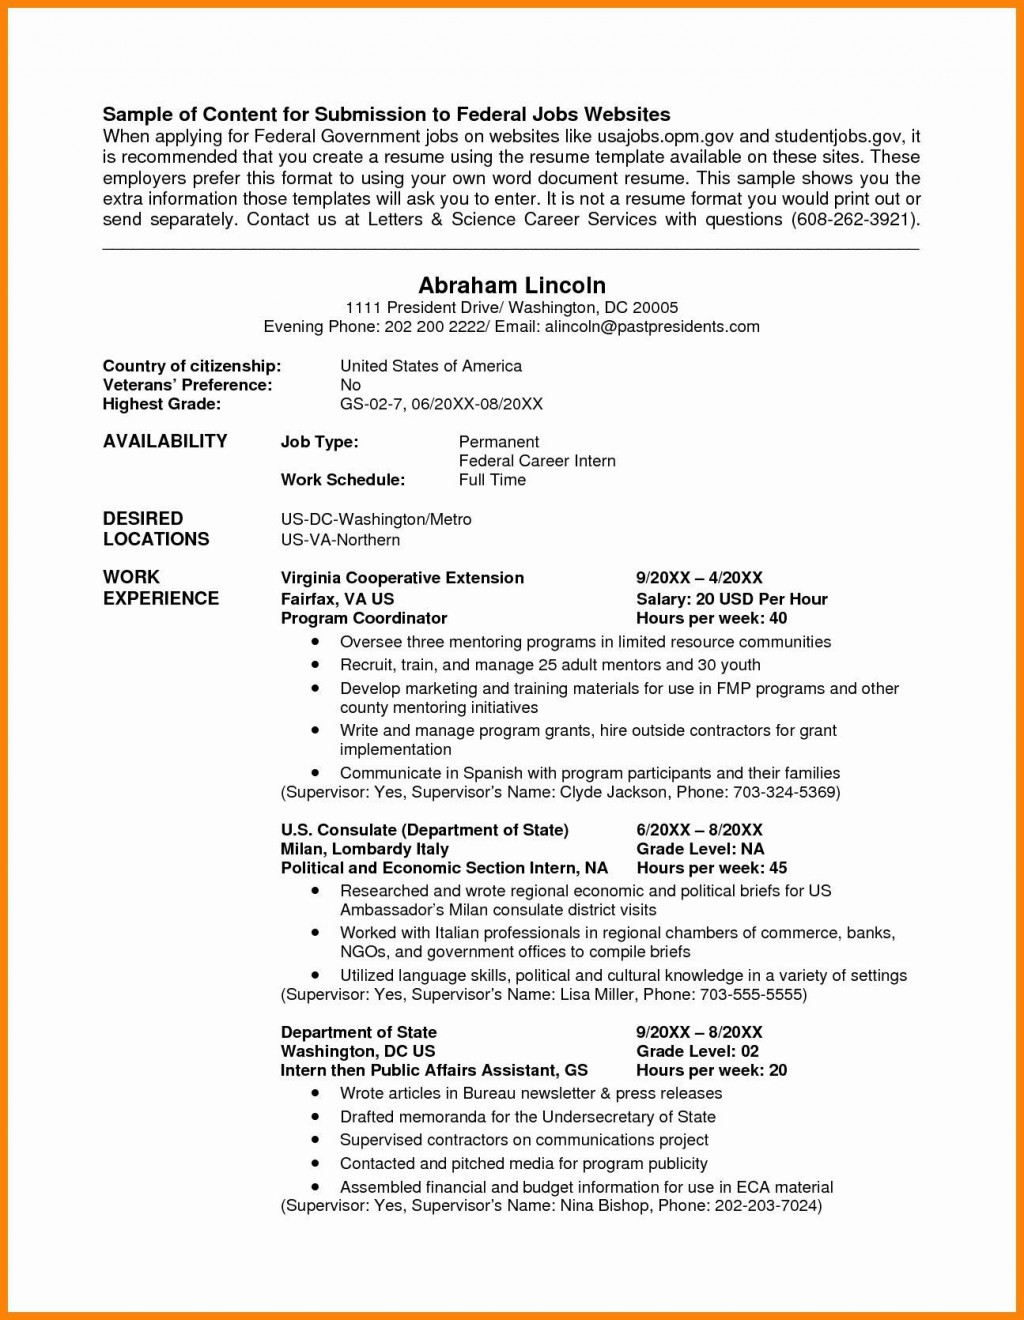 004 Incredible Usa Job Resume Template High Def  Builder Usajob FederalLarge